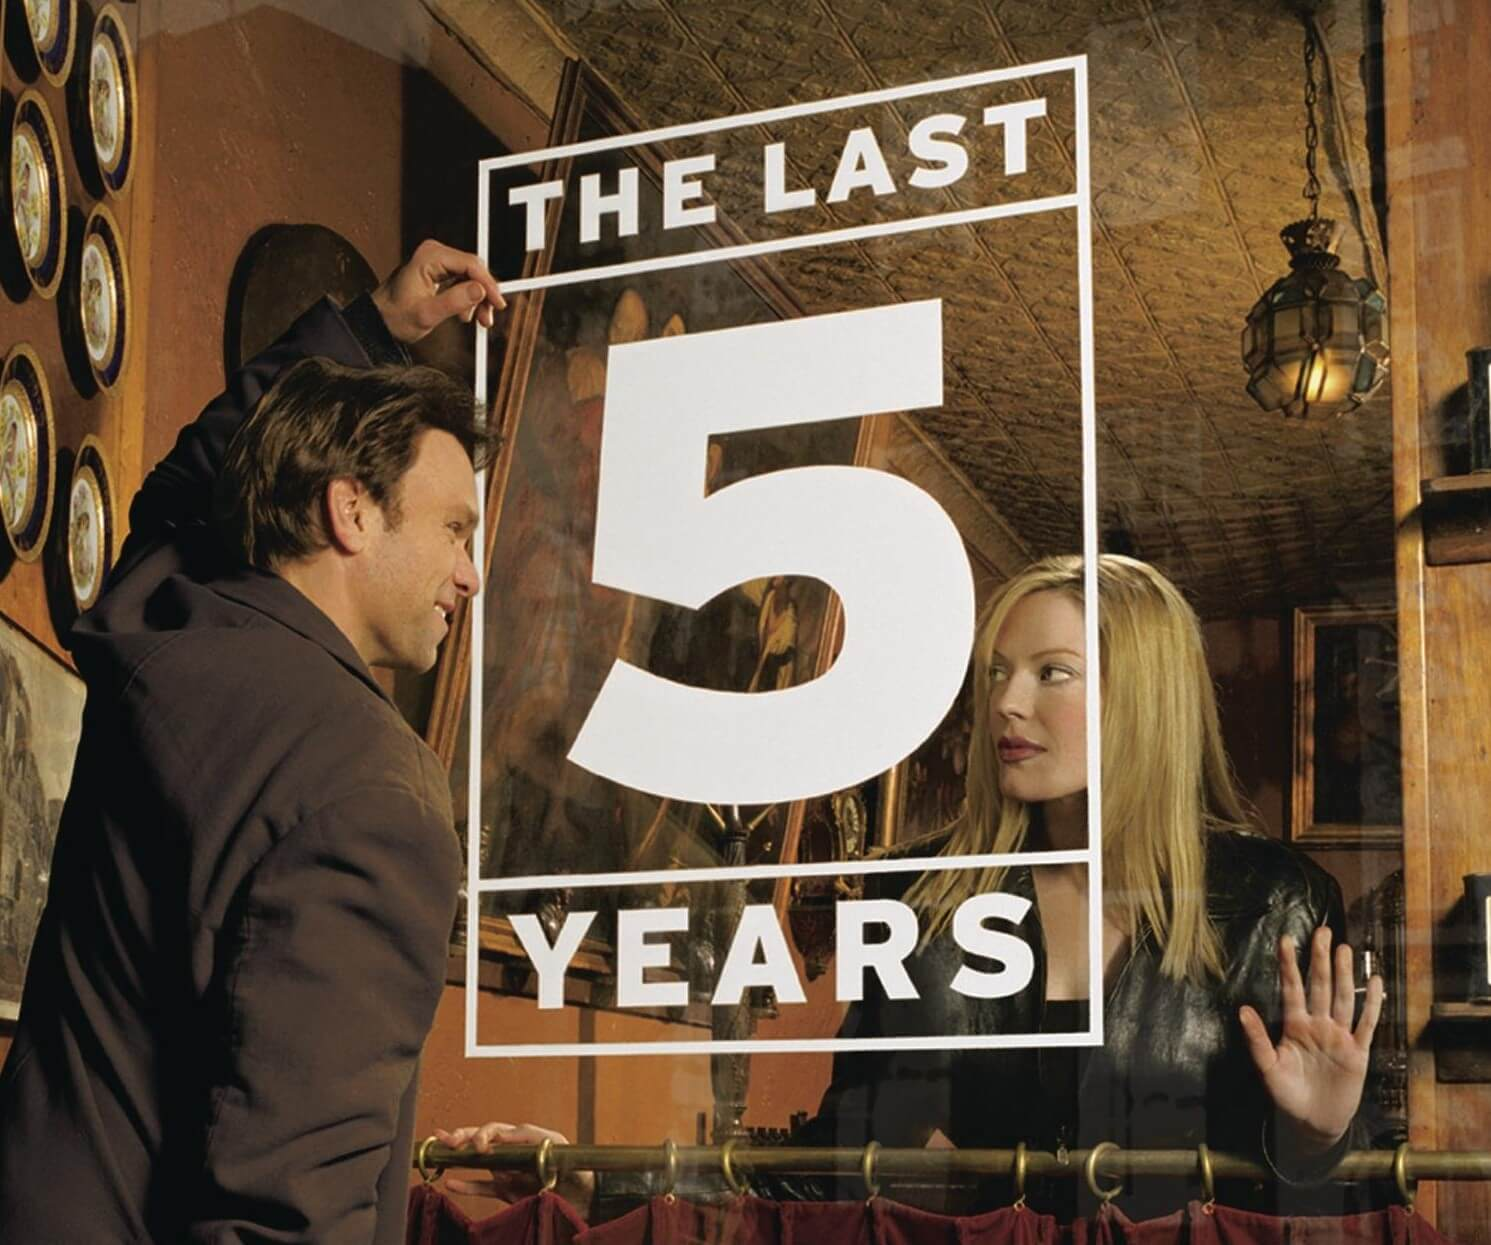 The Last Five Years - Matinee